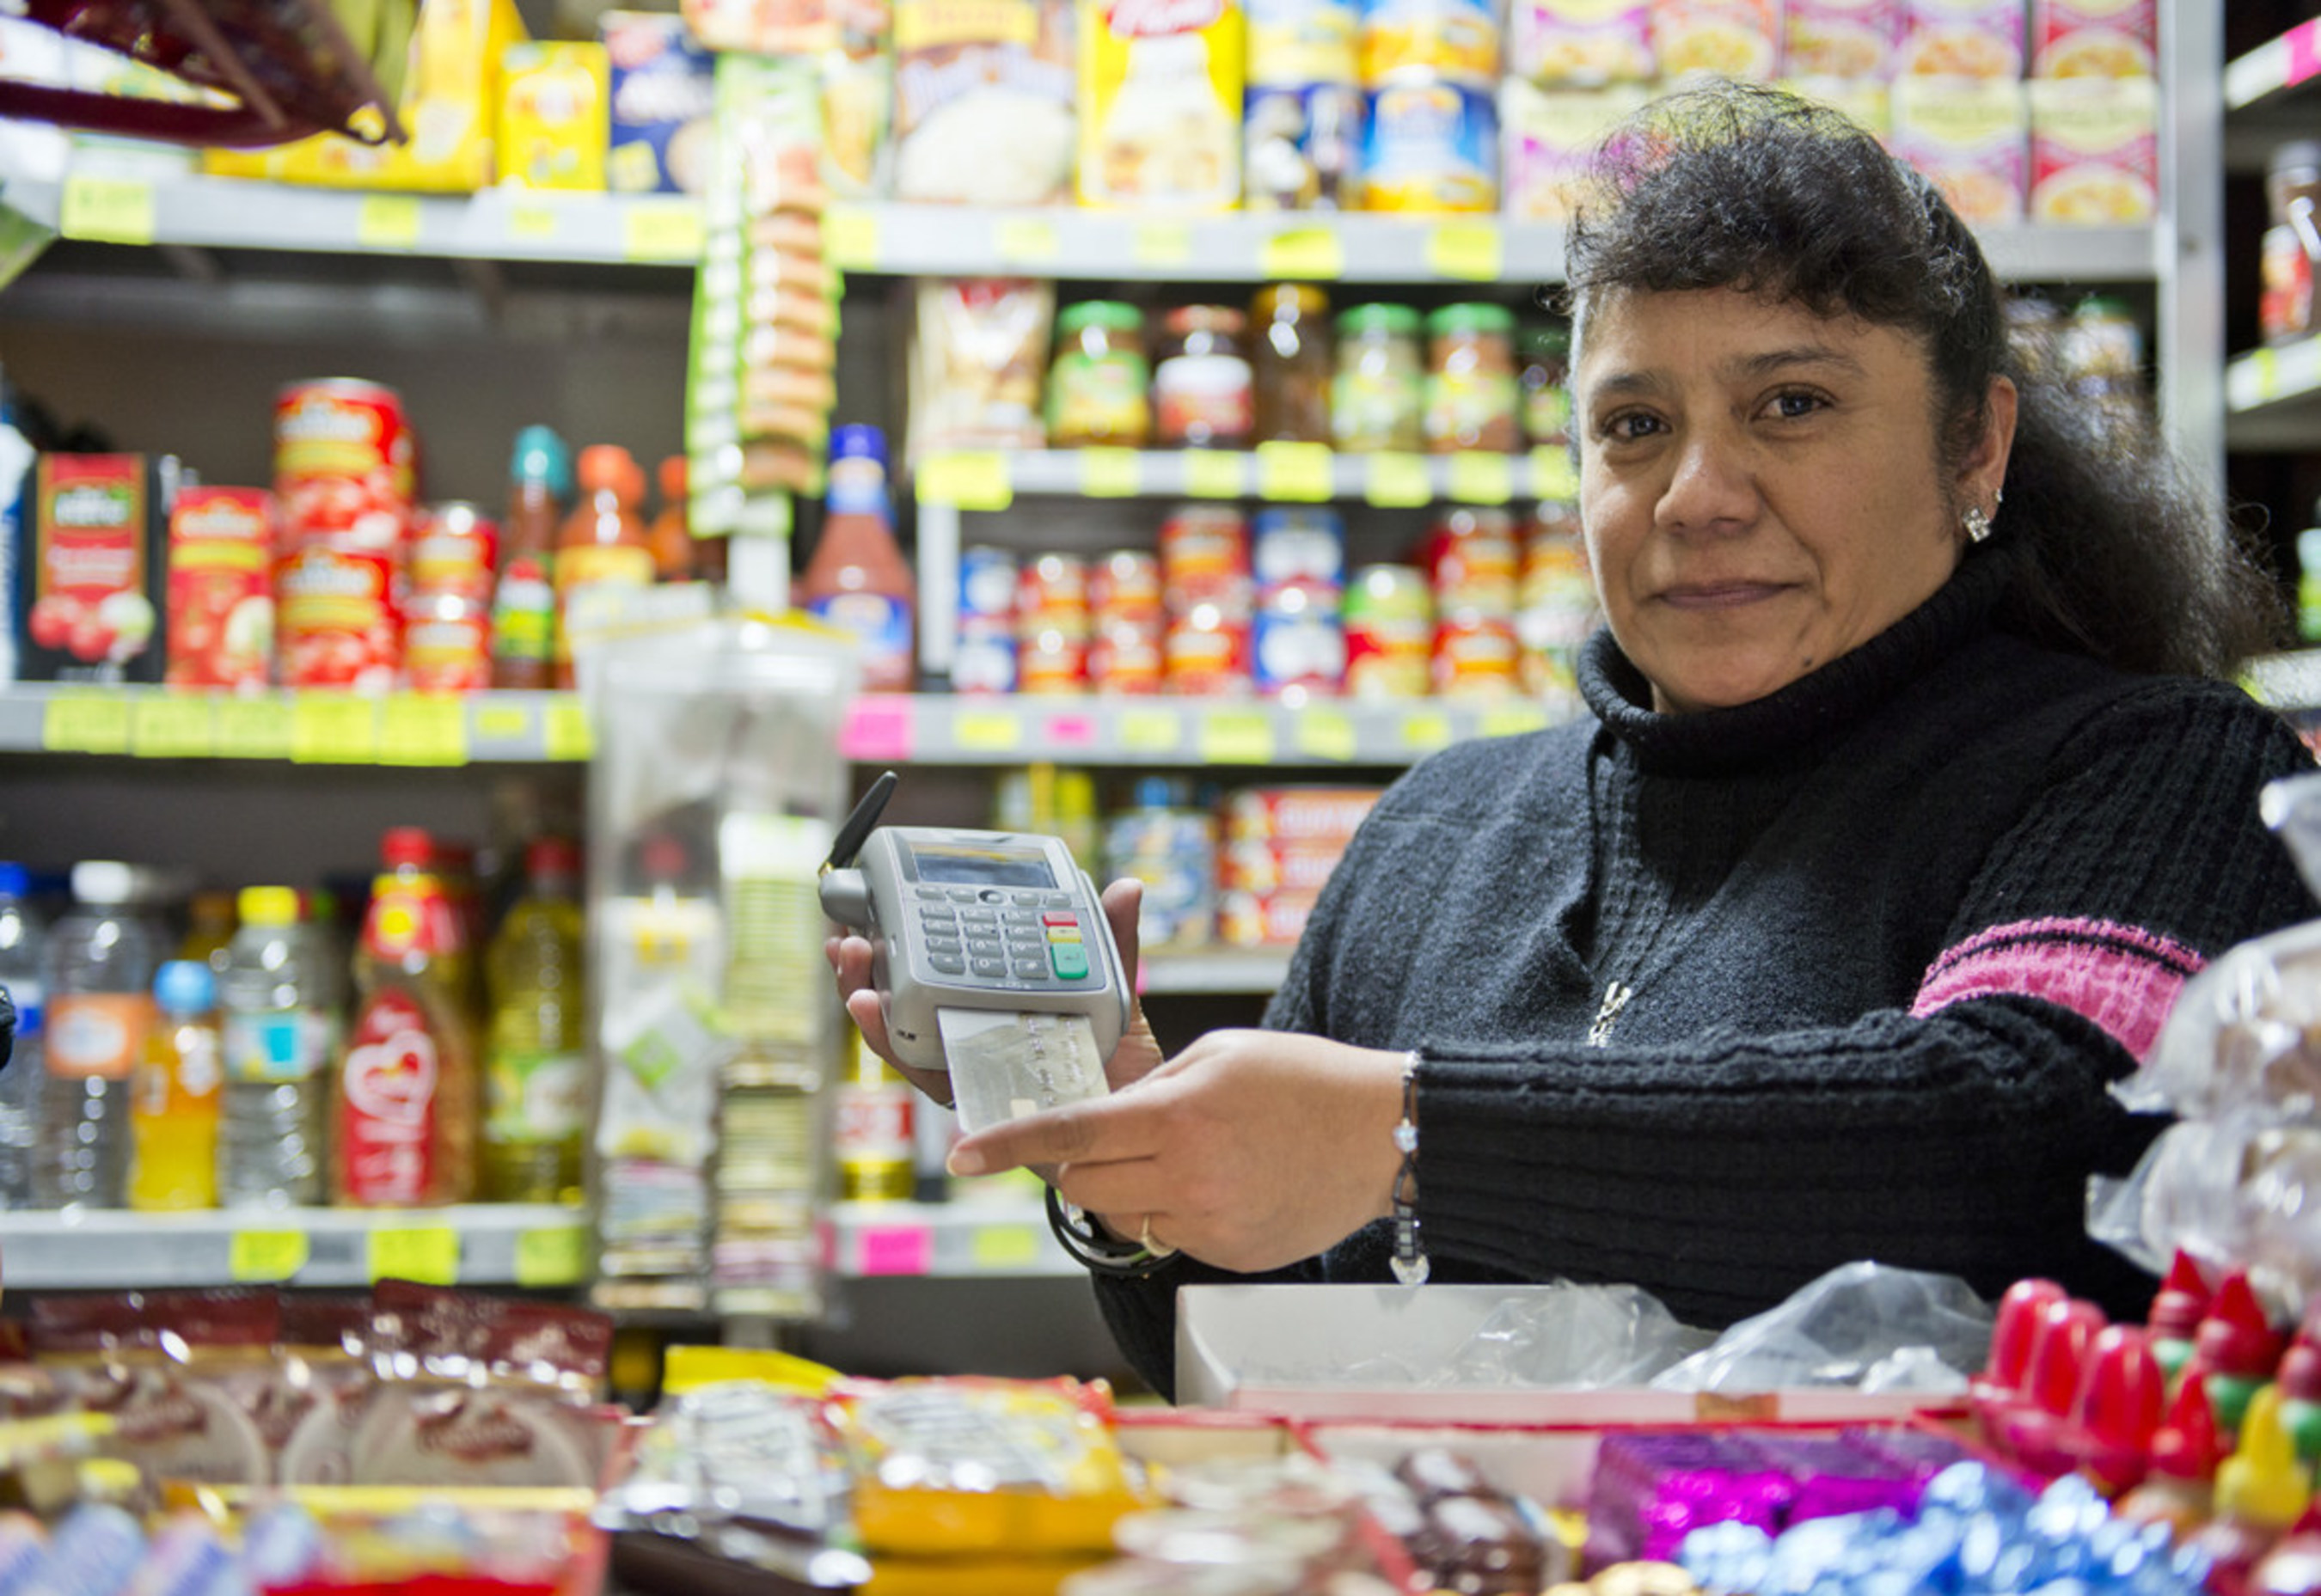 Grupo Bimbo joins the Better Than Cash Alliance to help small merchants in Mexico increase competitiveness with digital payments.